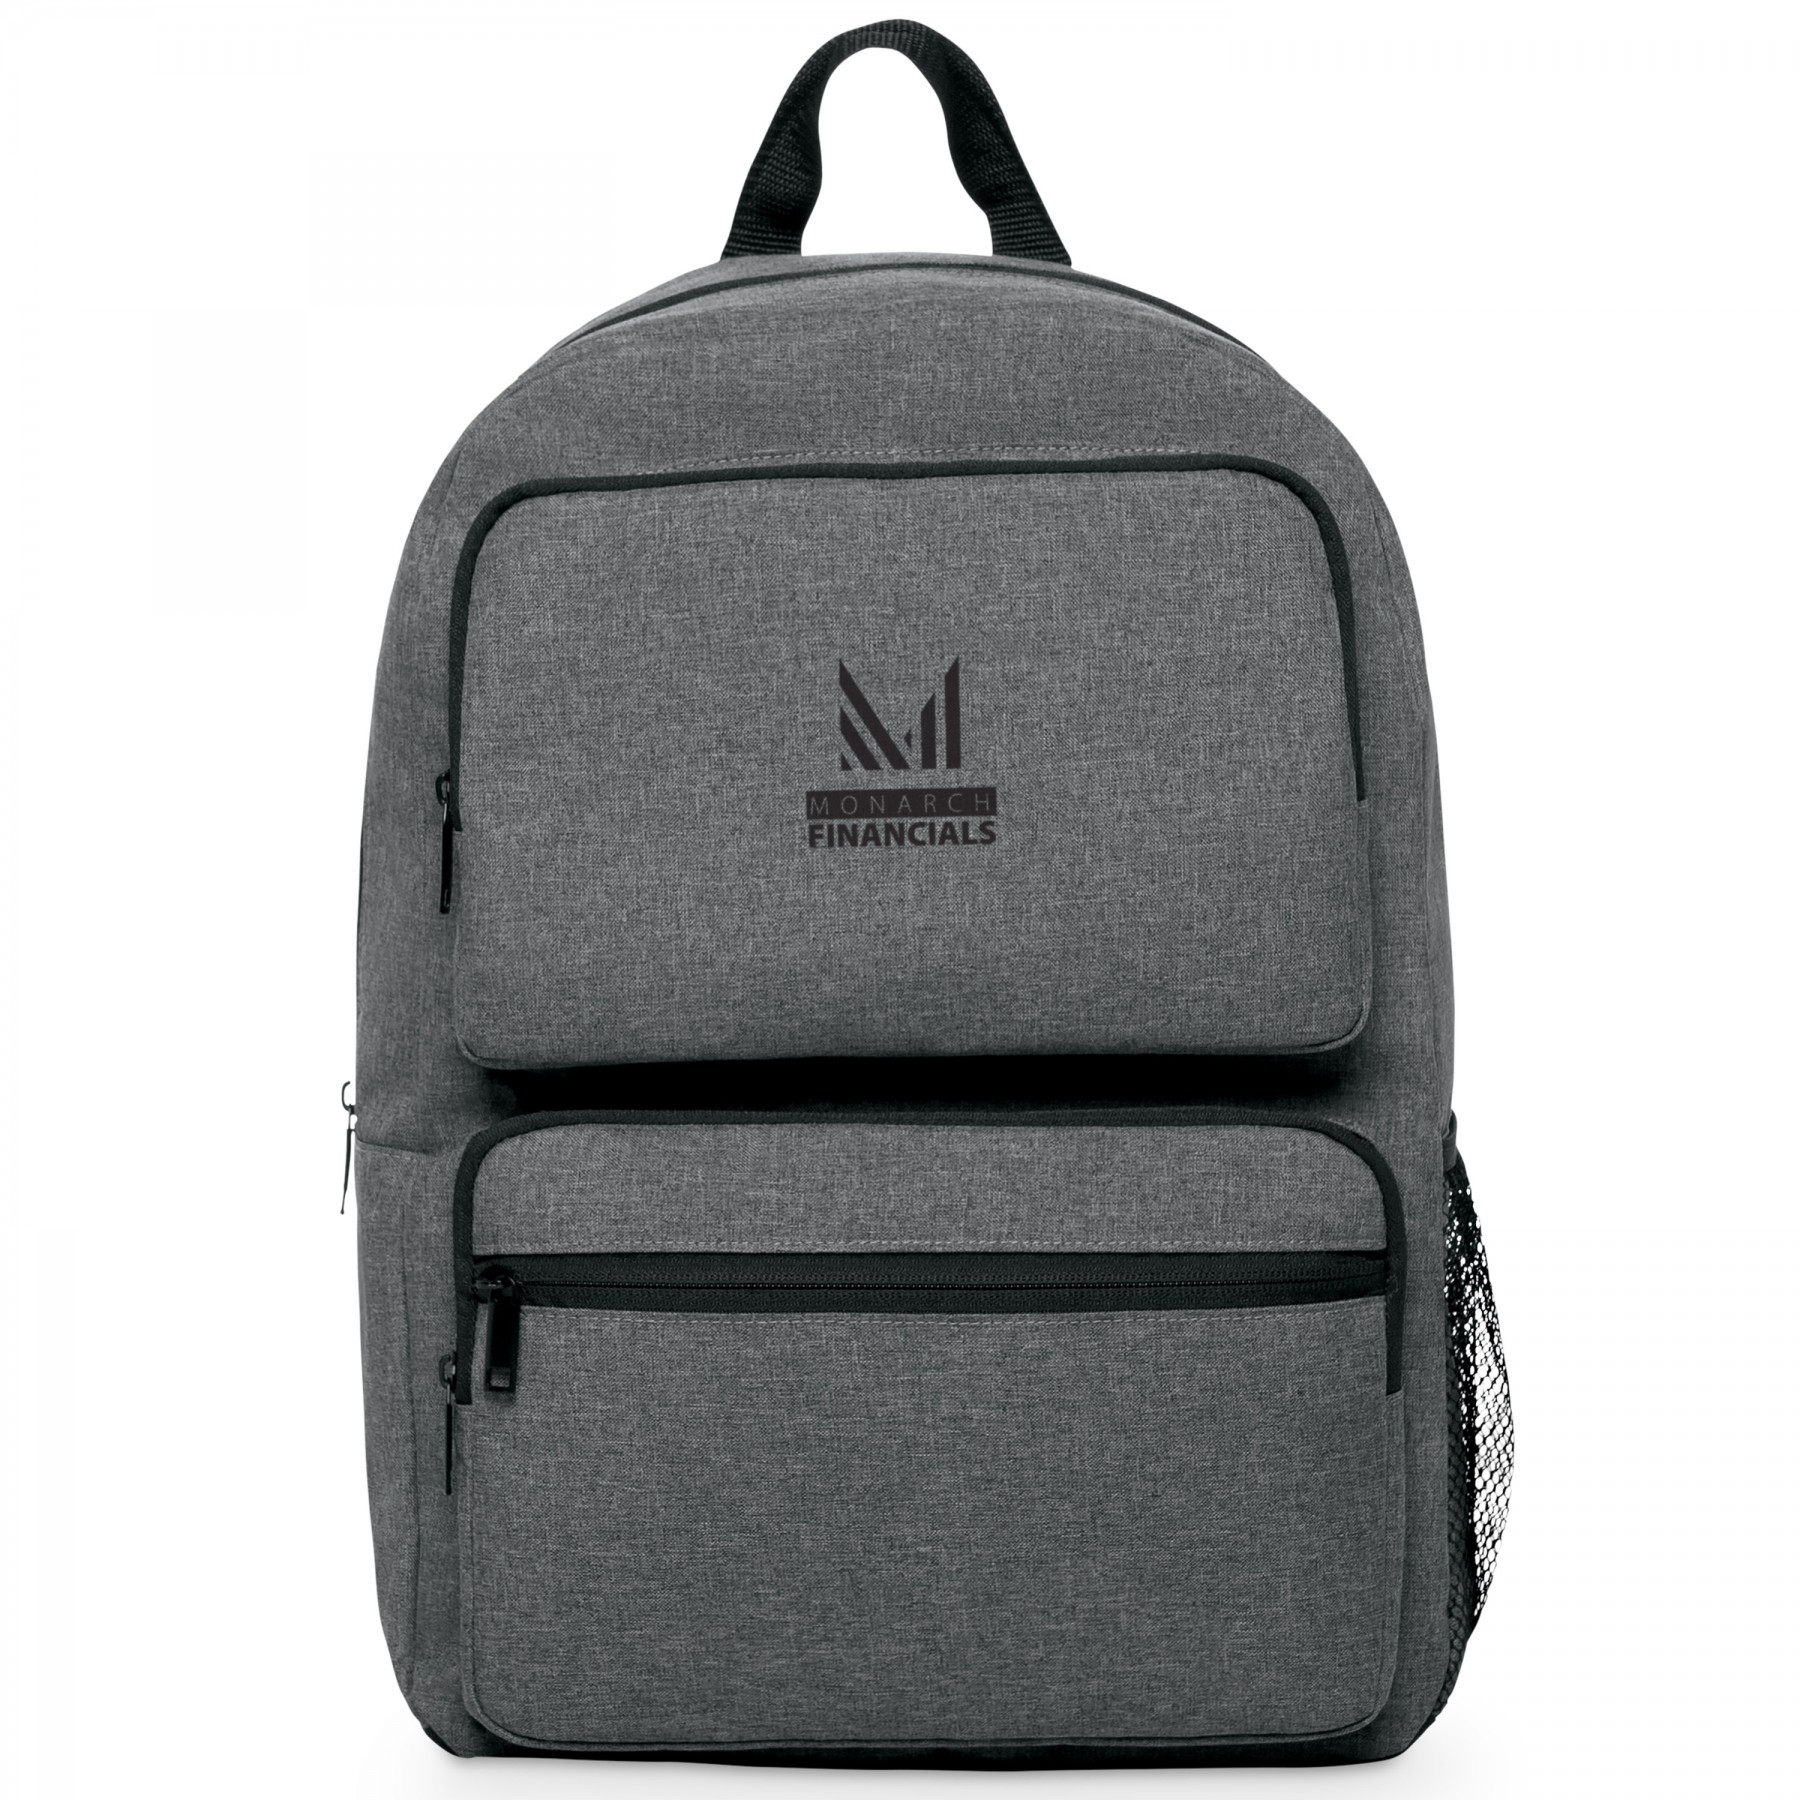 Business Smart Dual-Pocket Backpack, BG102, One Colour Imprint